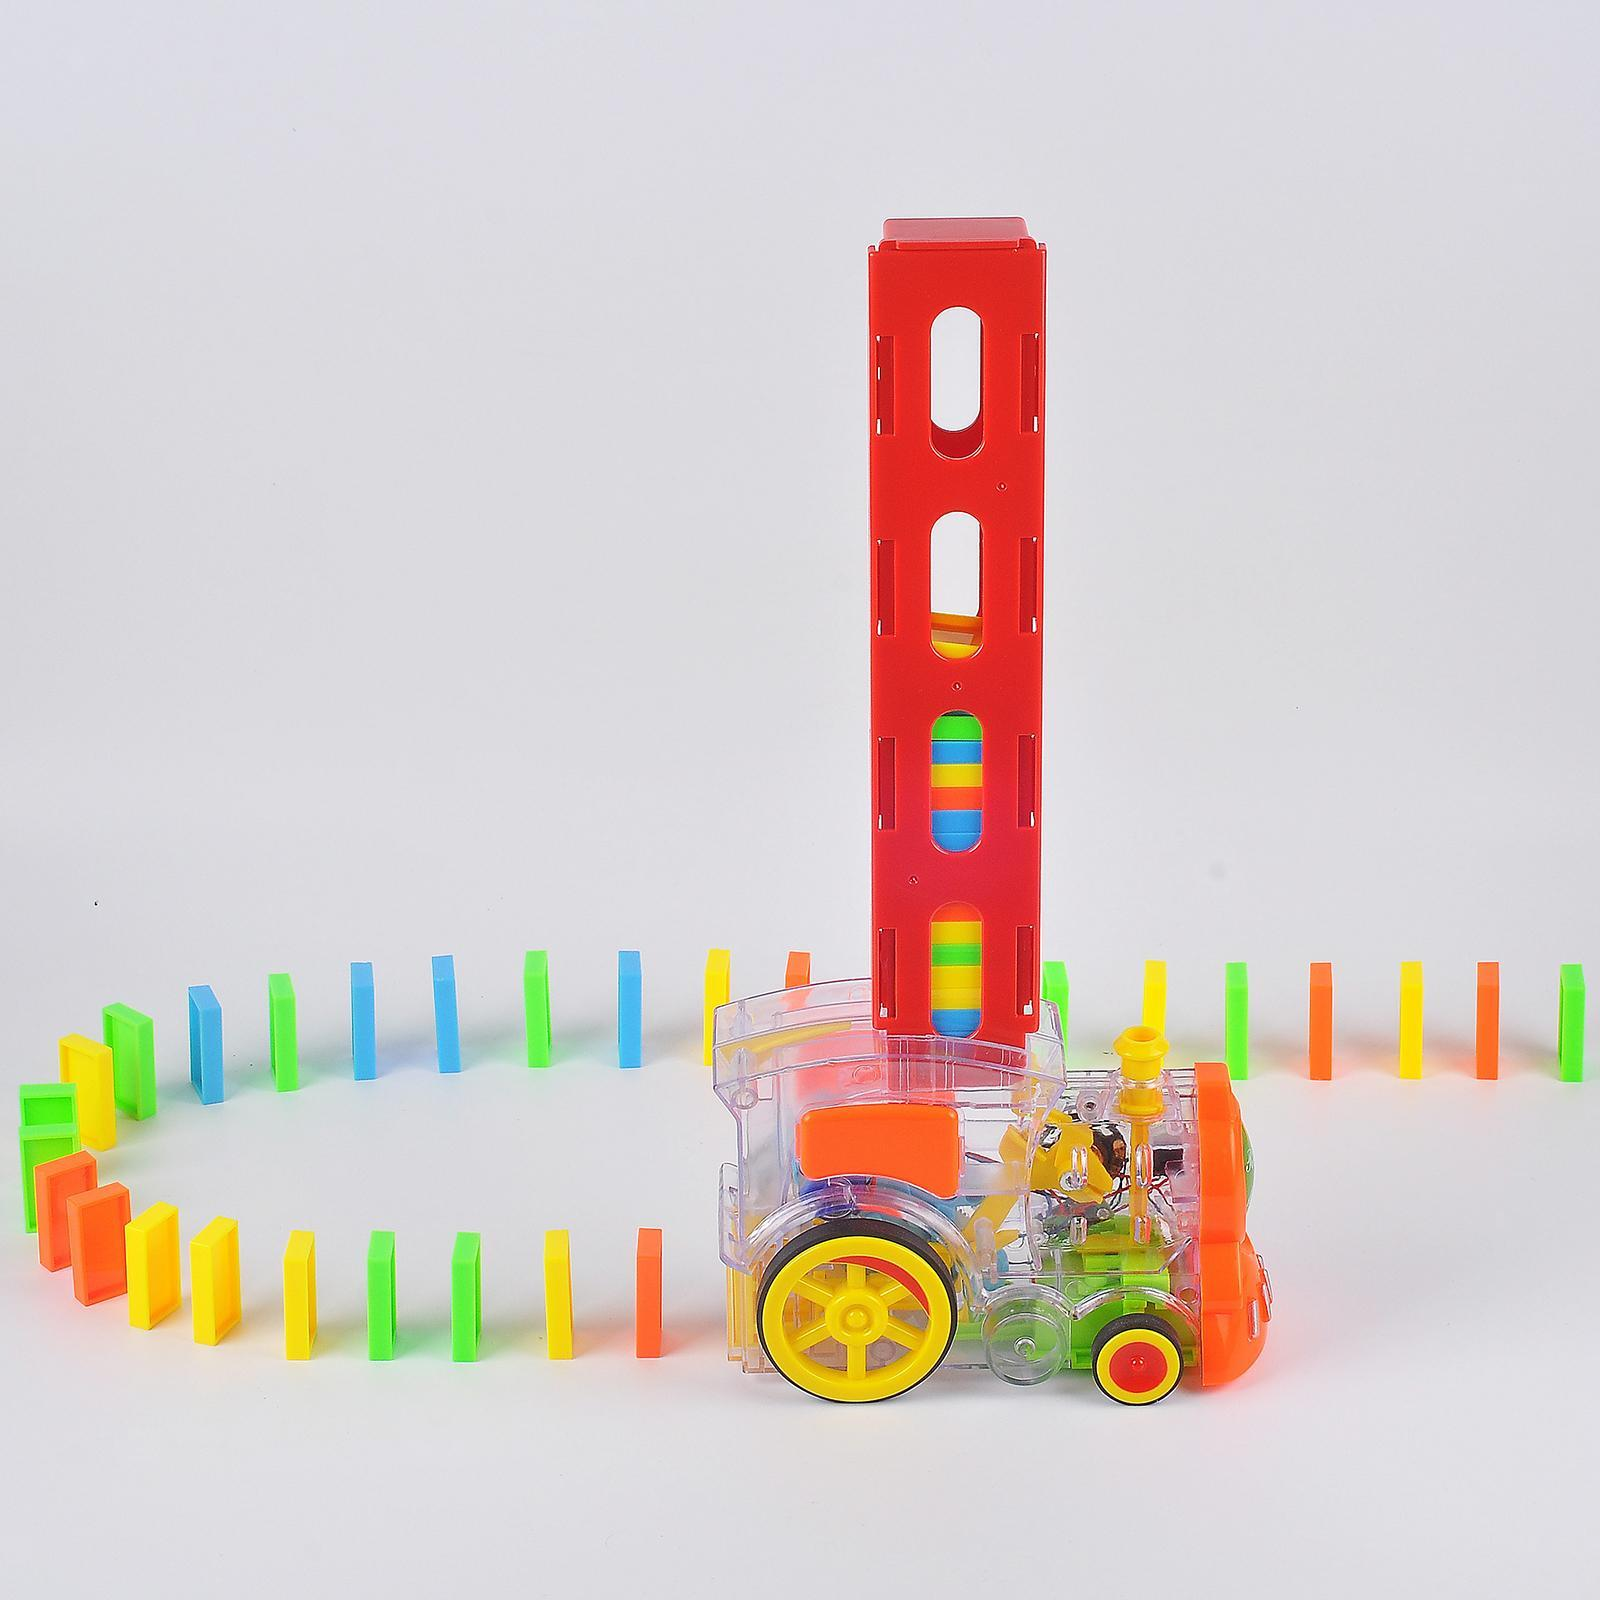 thumbnail 2 - Domino Electric Train Set Toy Building Blocks Game Toy Gift for Kids